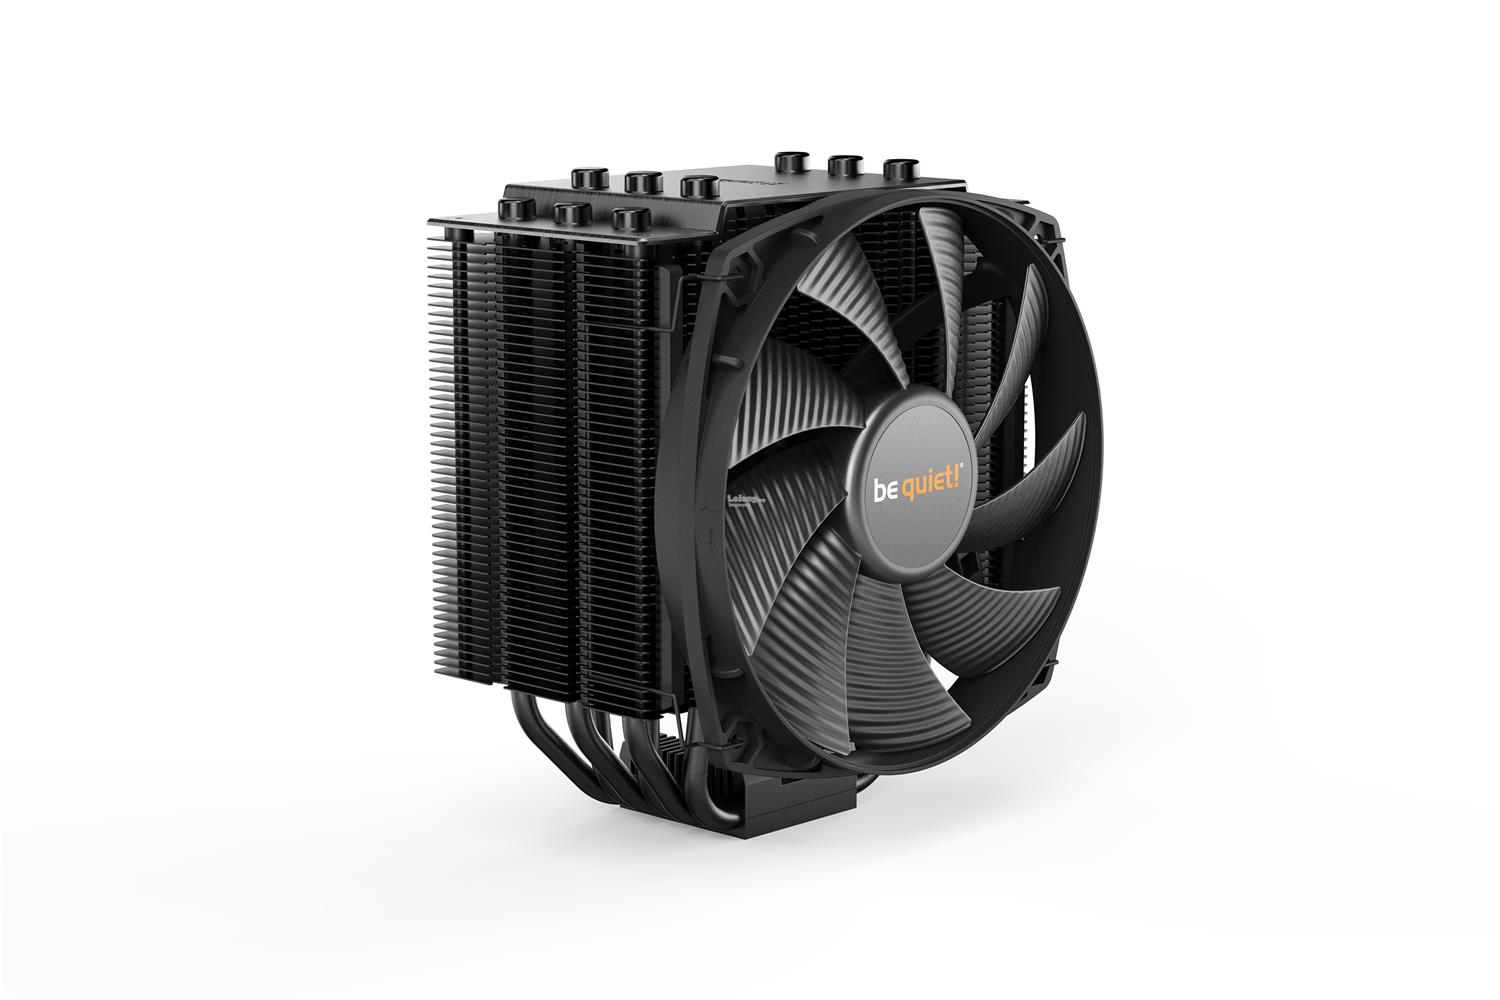 # be quiet! Dark Rock 4 CPU Air Cooler #